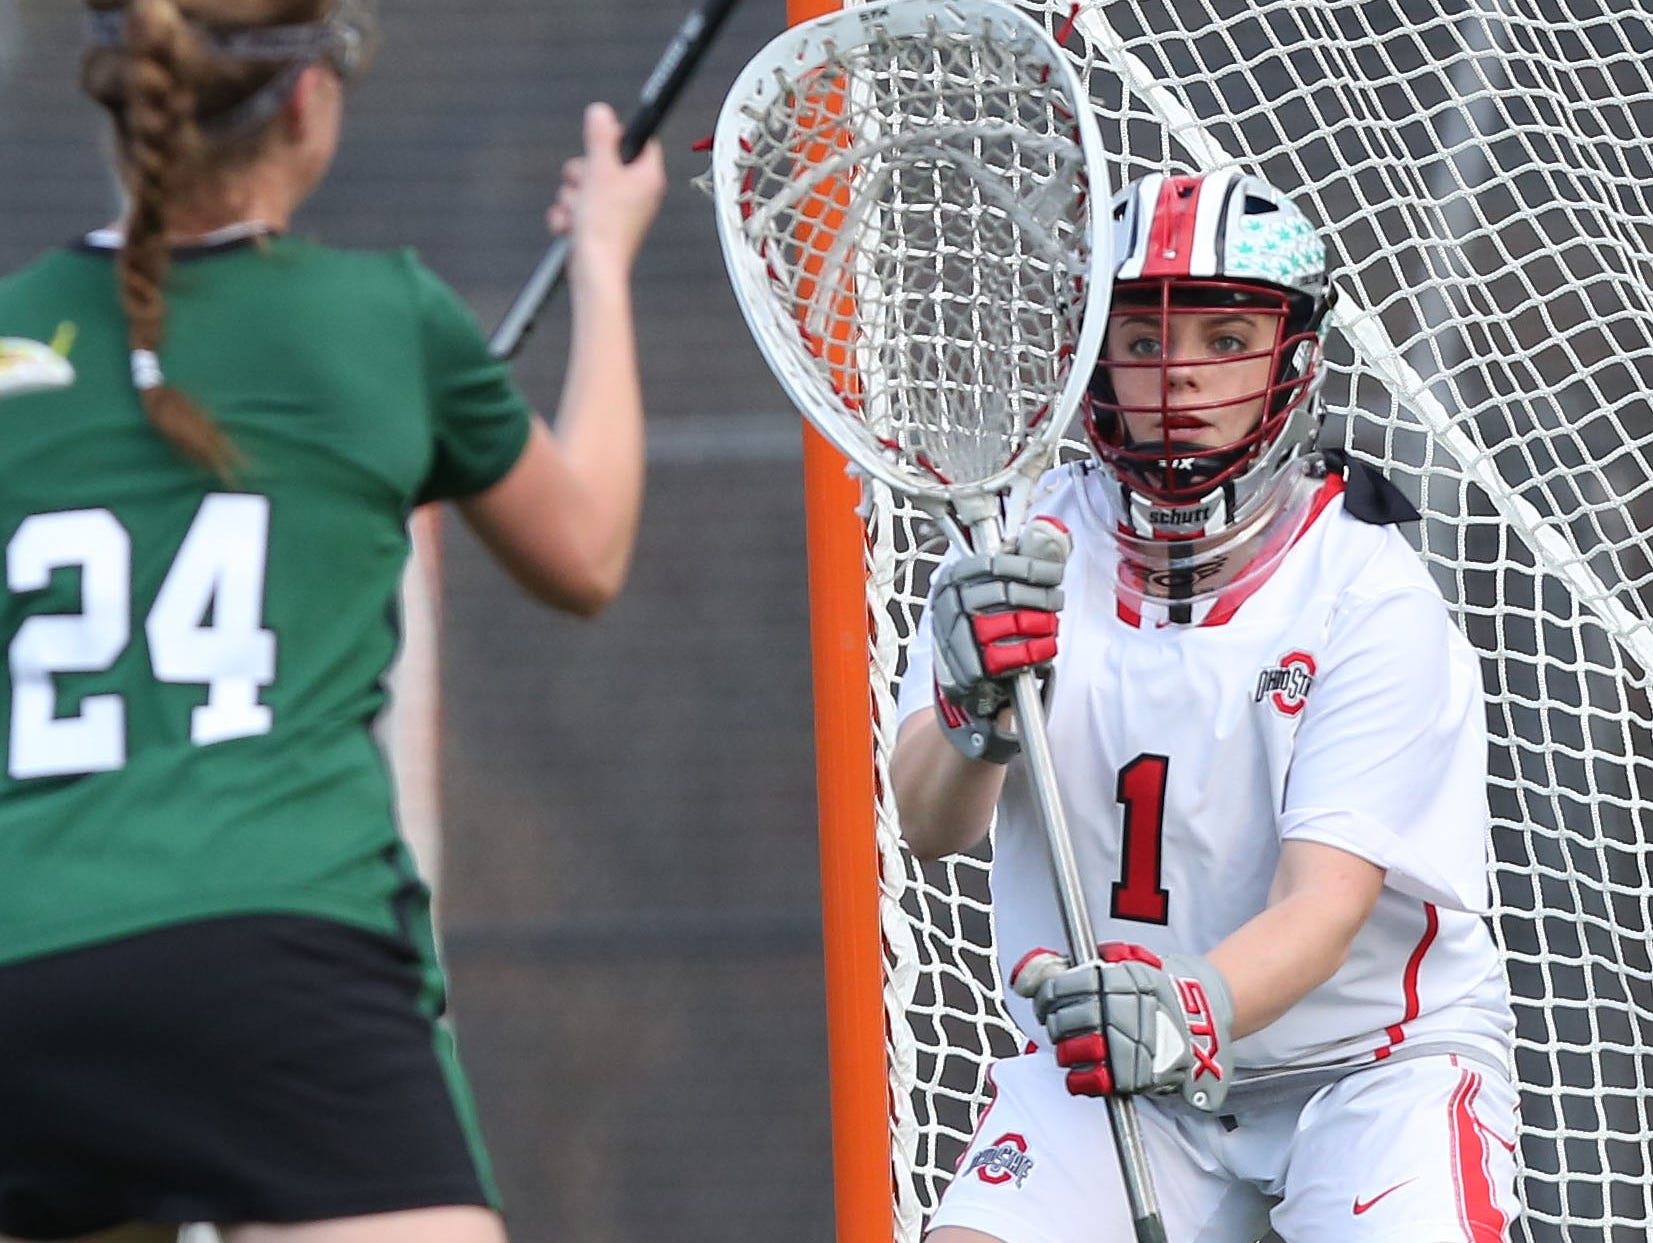 From right, Ohio State goalie Katie Frederick (1) gets ready for a shot from Binghamton's Rebecca Golderman (24) at Yorktown High School March 25, 2016. Ohio State won the game 10-5. Frederick is a graduate of Yorktown High School.